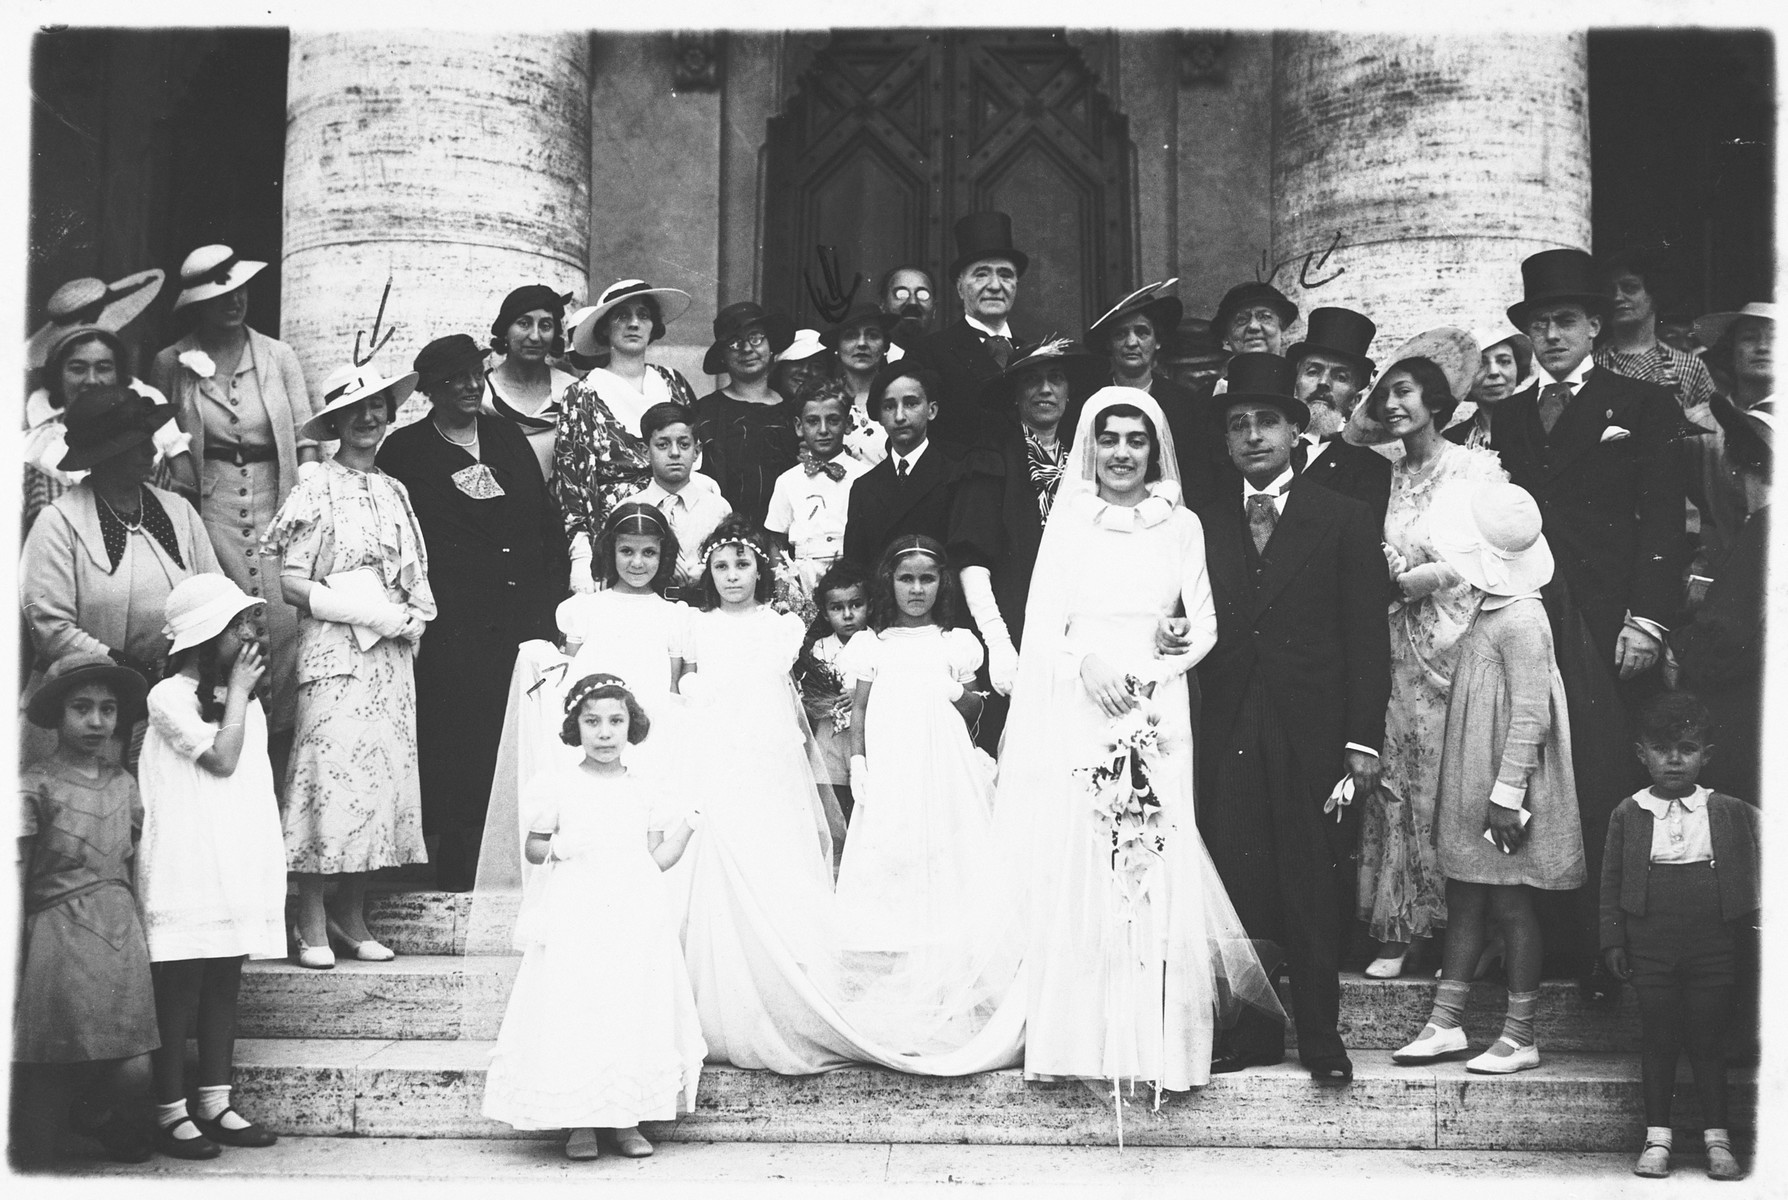 Wedding of Silva Bachi, a cousin of Paola Sereni Foa.  Serenella Foa is one of the bridesmaids.  Her mother and grandmother are also pictured.